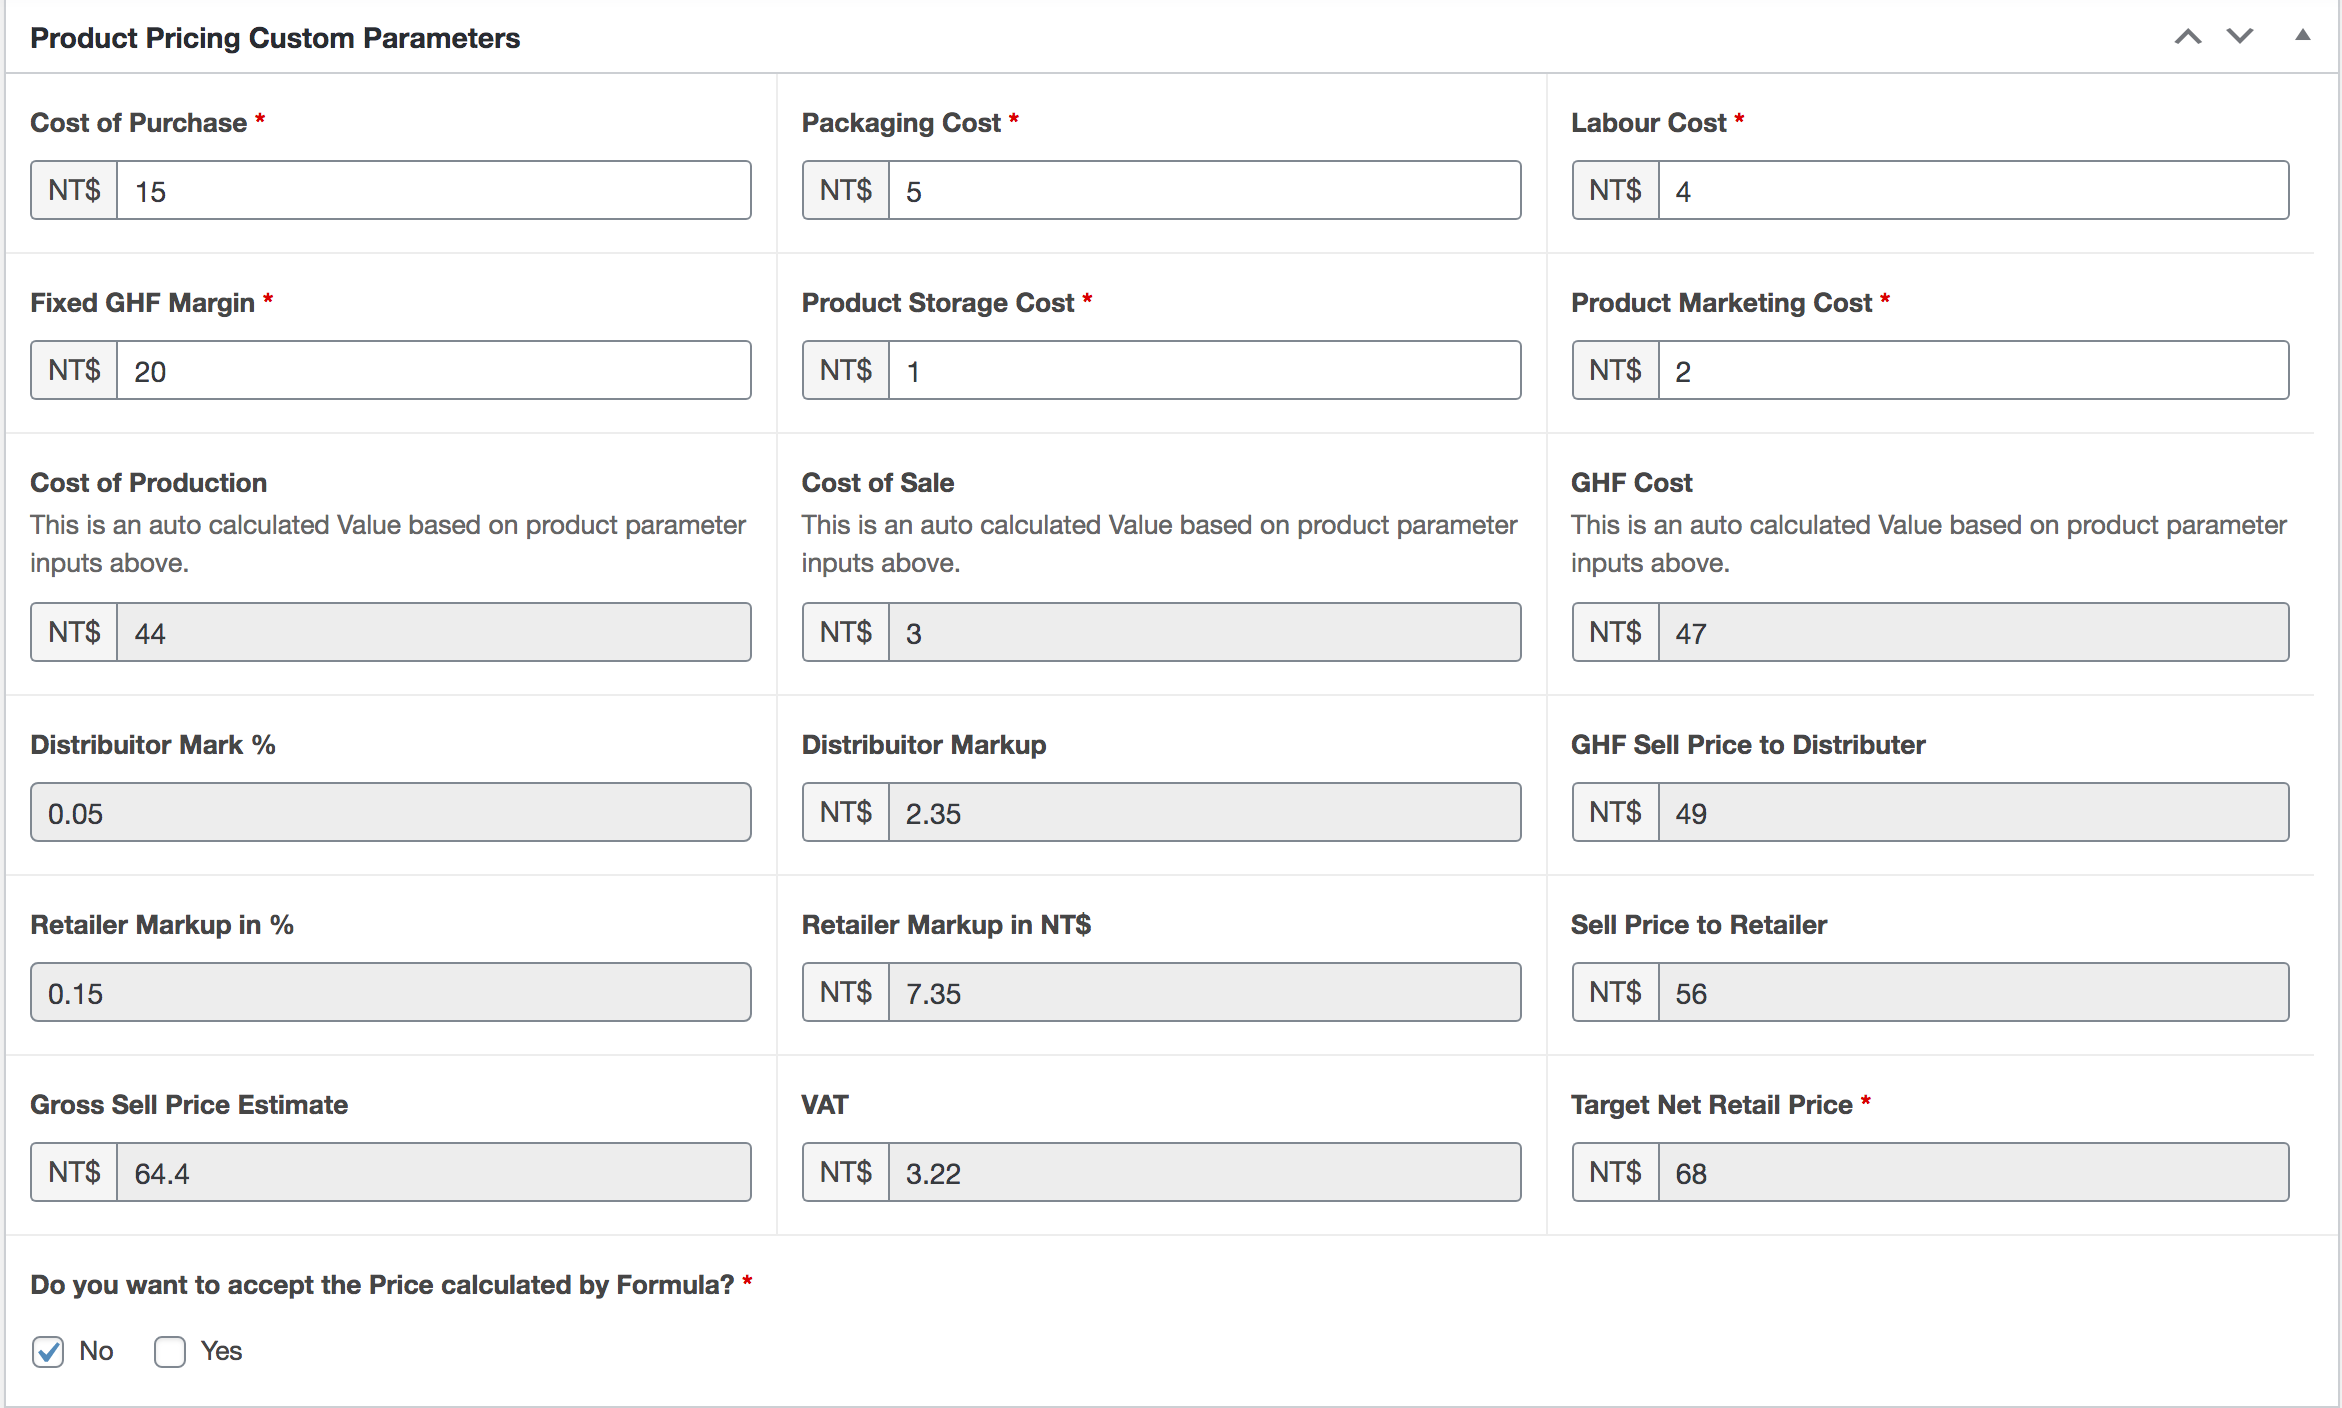 Updated Custom Fields - Added a COnditional Checkbox to accept Price or Set Manually